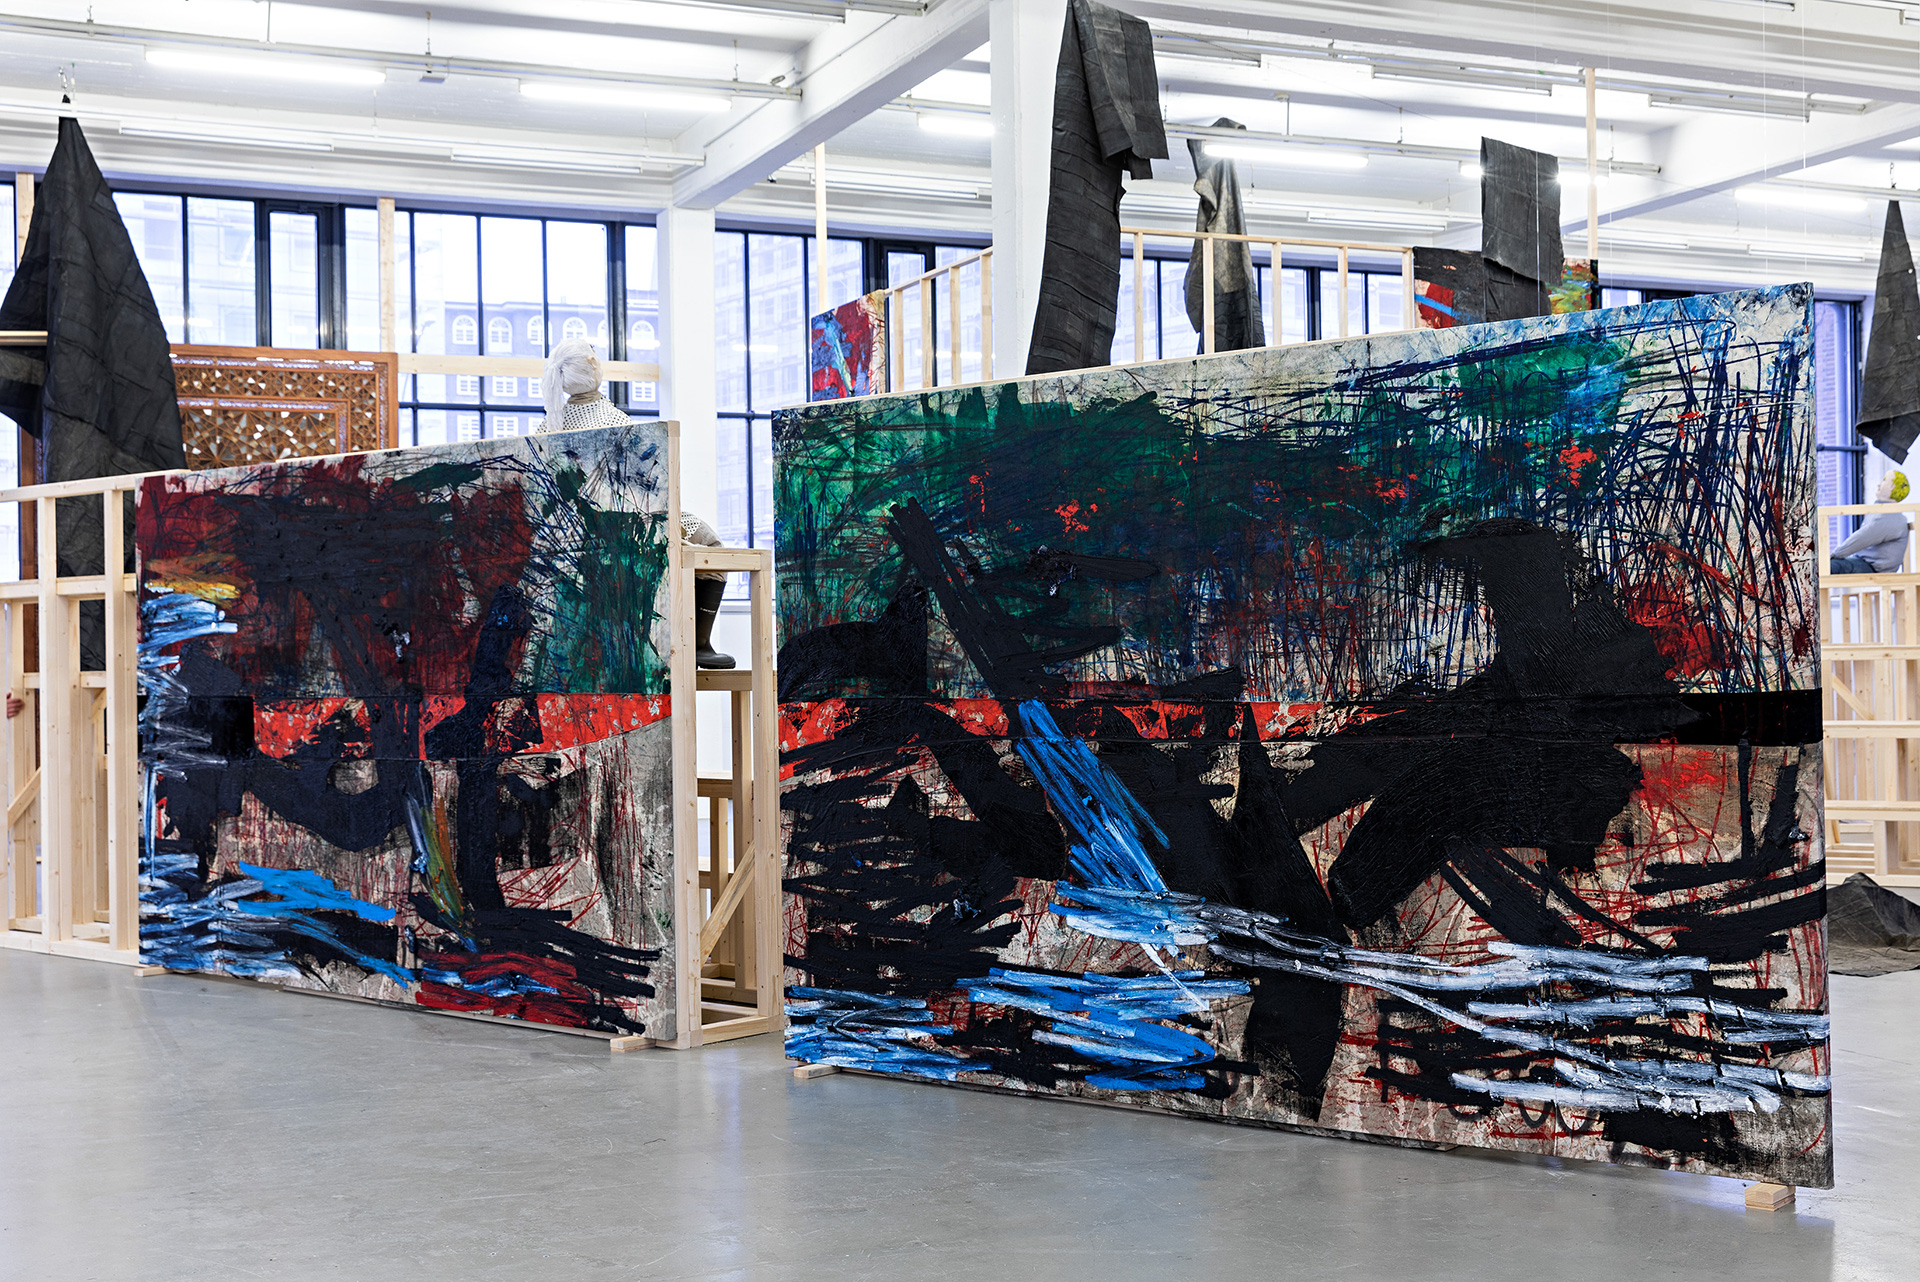 Oscar Murillo, Horizontal Darkness in Search of Solidarity, installation view 5, Kunstverein in Hamburg, 2019 | Oscar Murillo| STIRworld